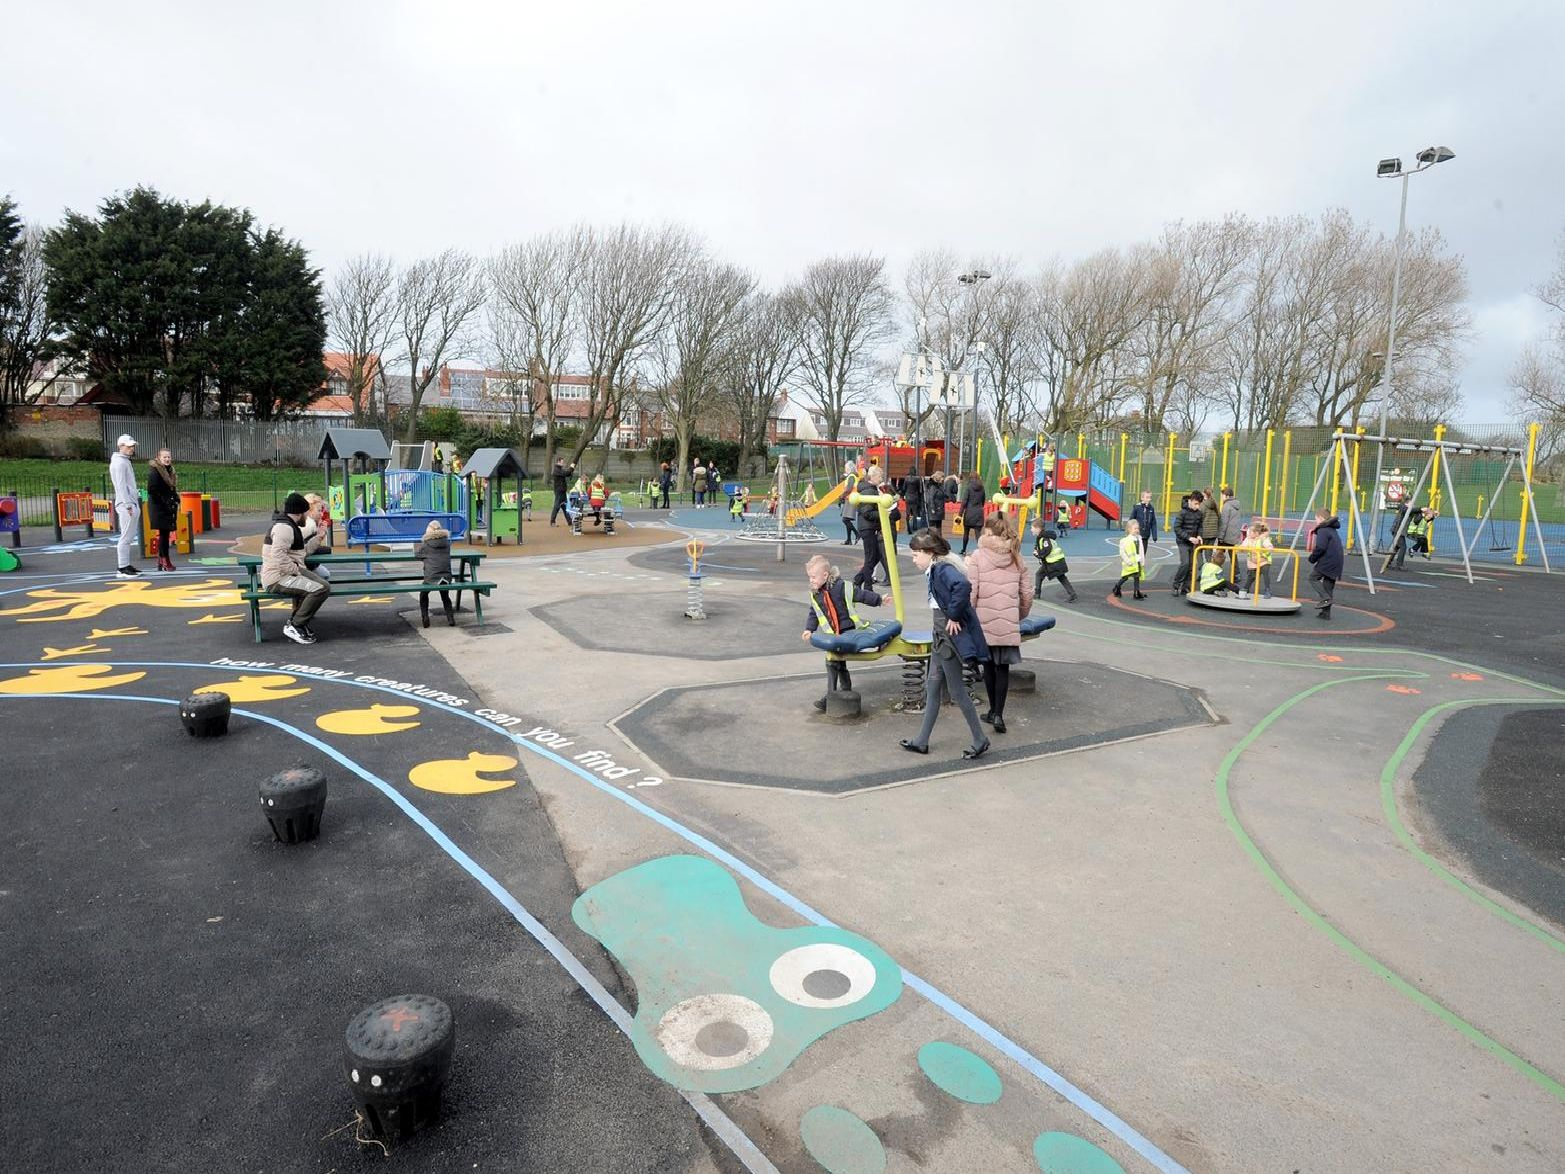 Better Starts parks and open spaces strategy has seen a complete overhaul of the play area at Claremont with the creation of a pirate-themed park and new pathways.